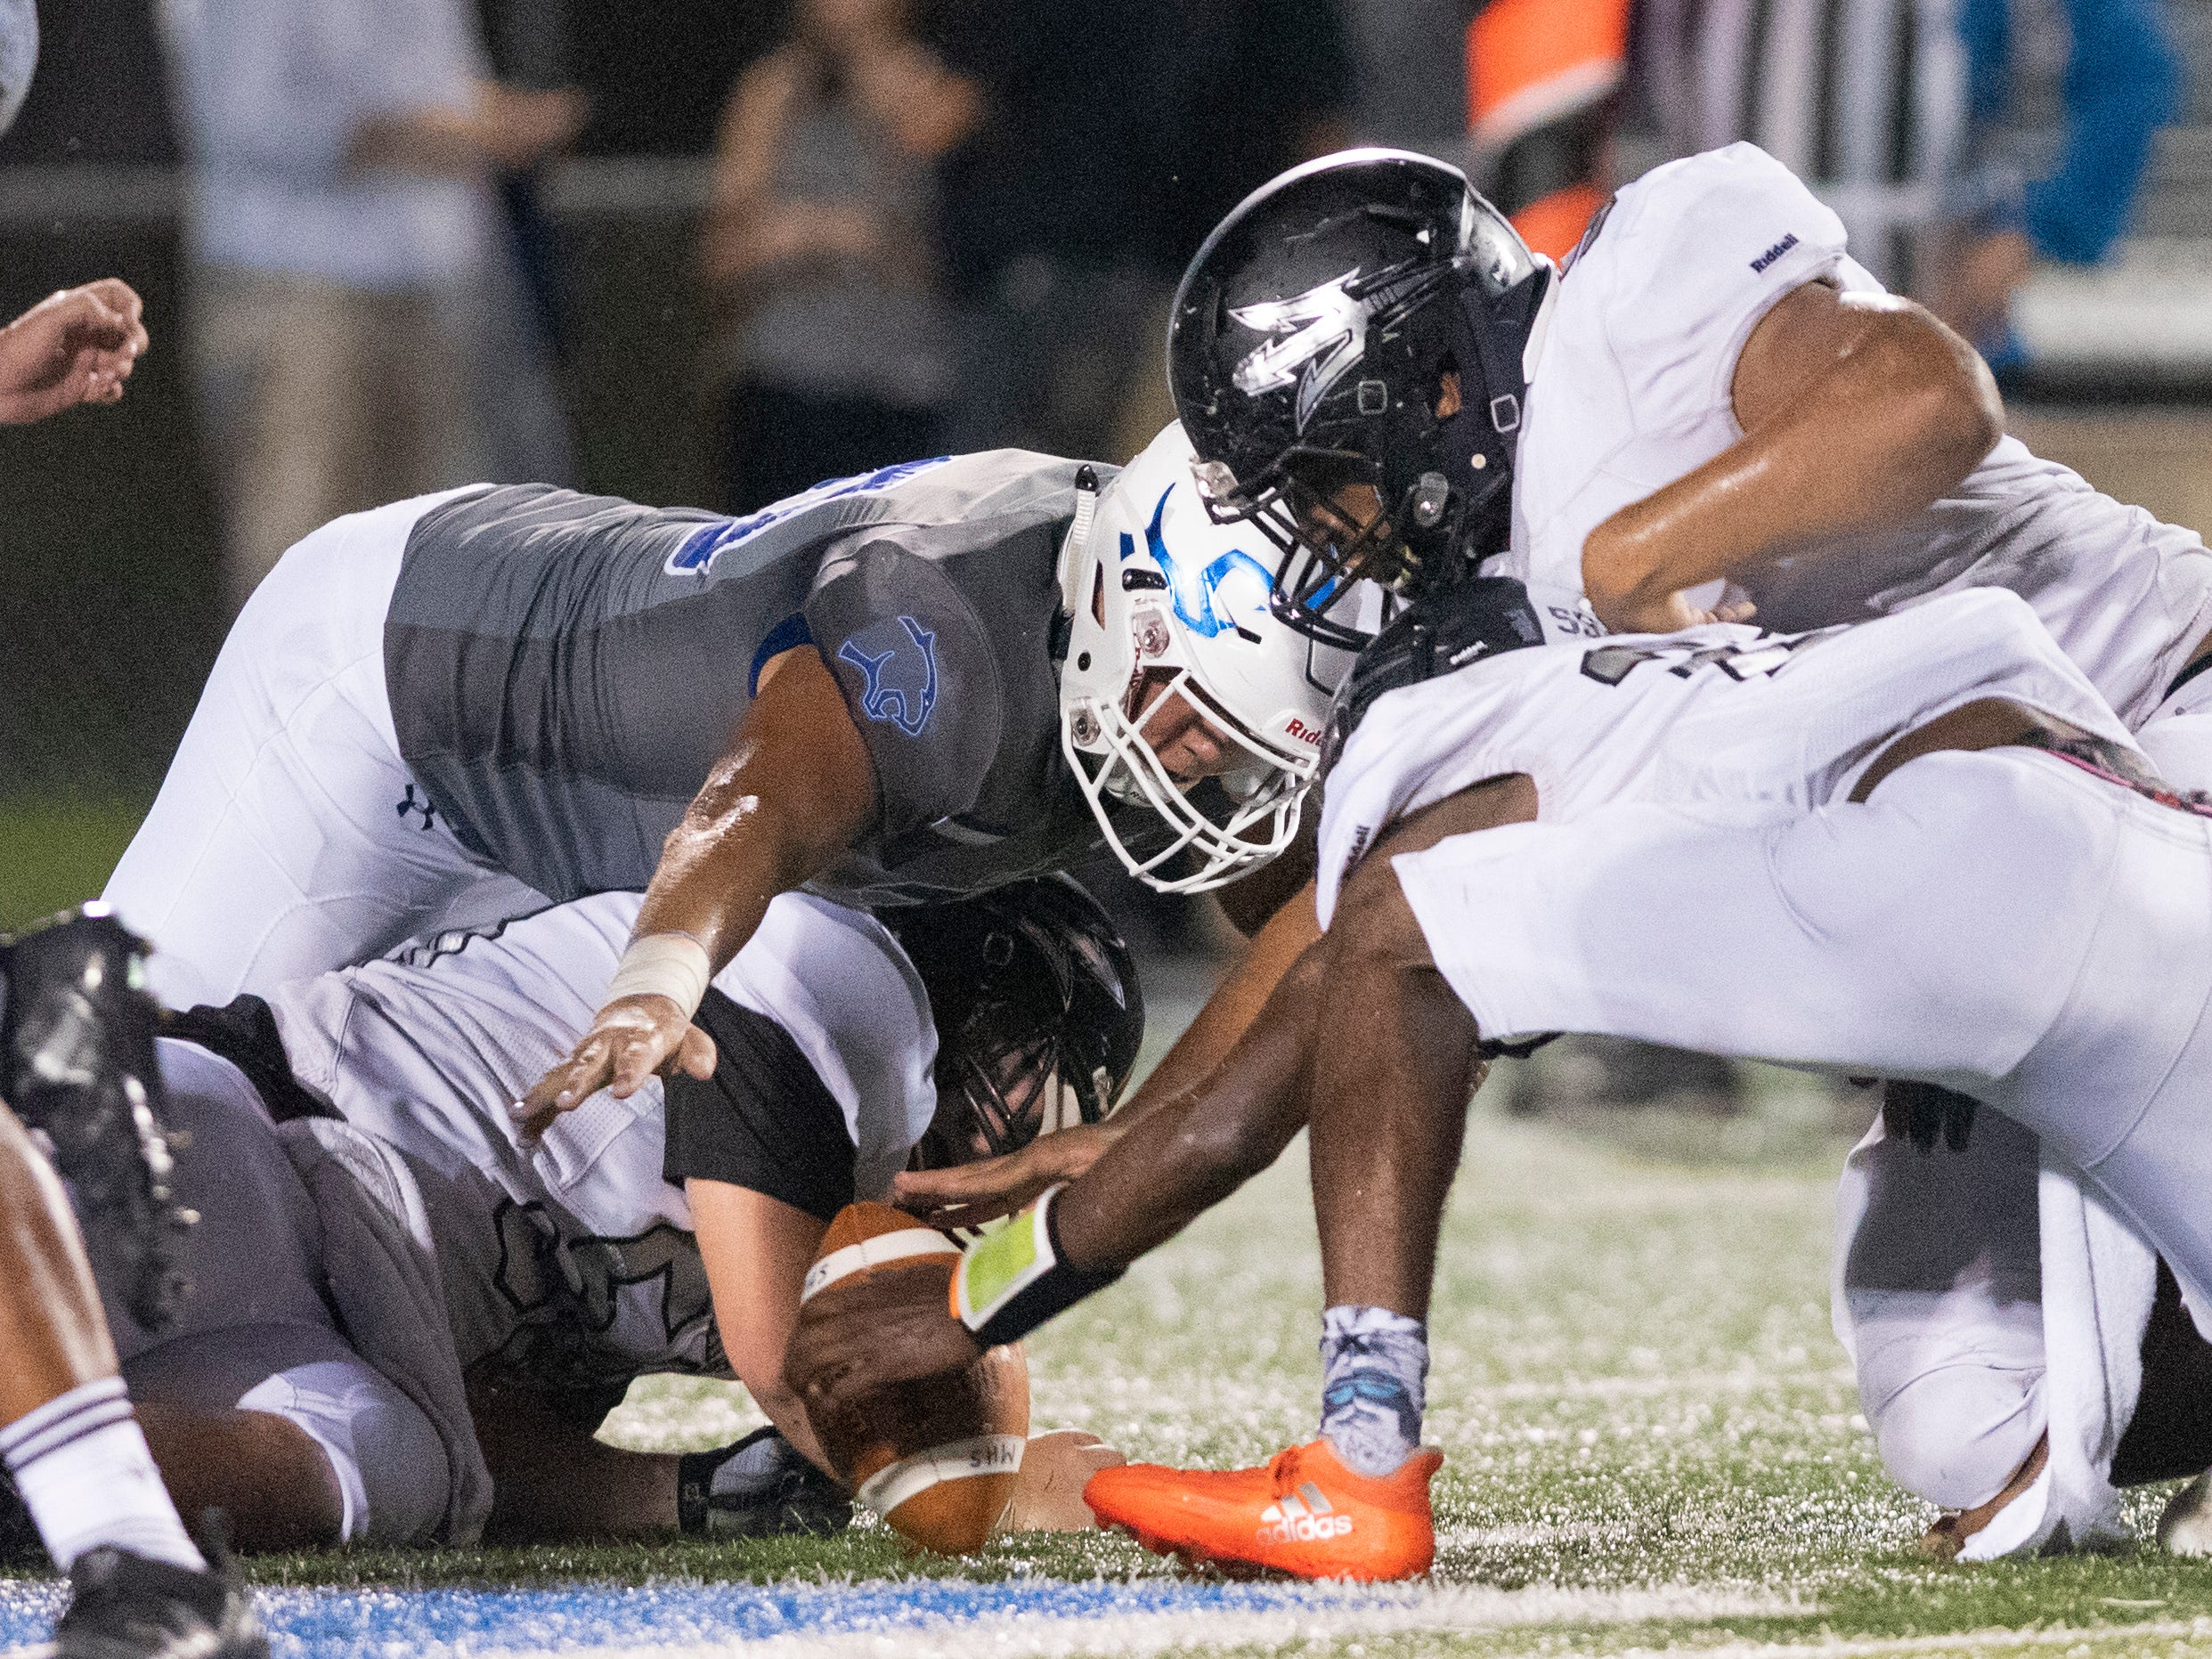 The Barron Collier defense and the Mariner offense dive for a Mariner fumble during the game at Barron Collier High Friday night, September 21, 2018.